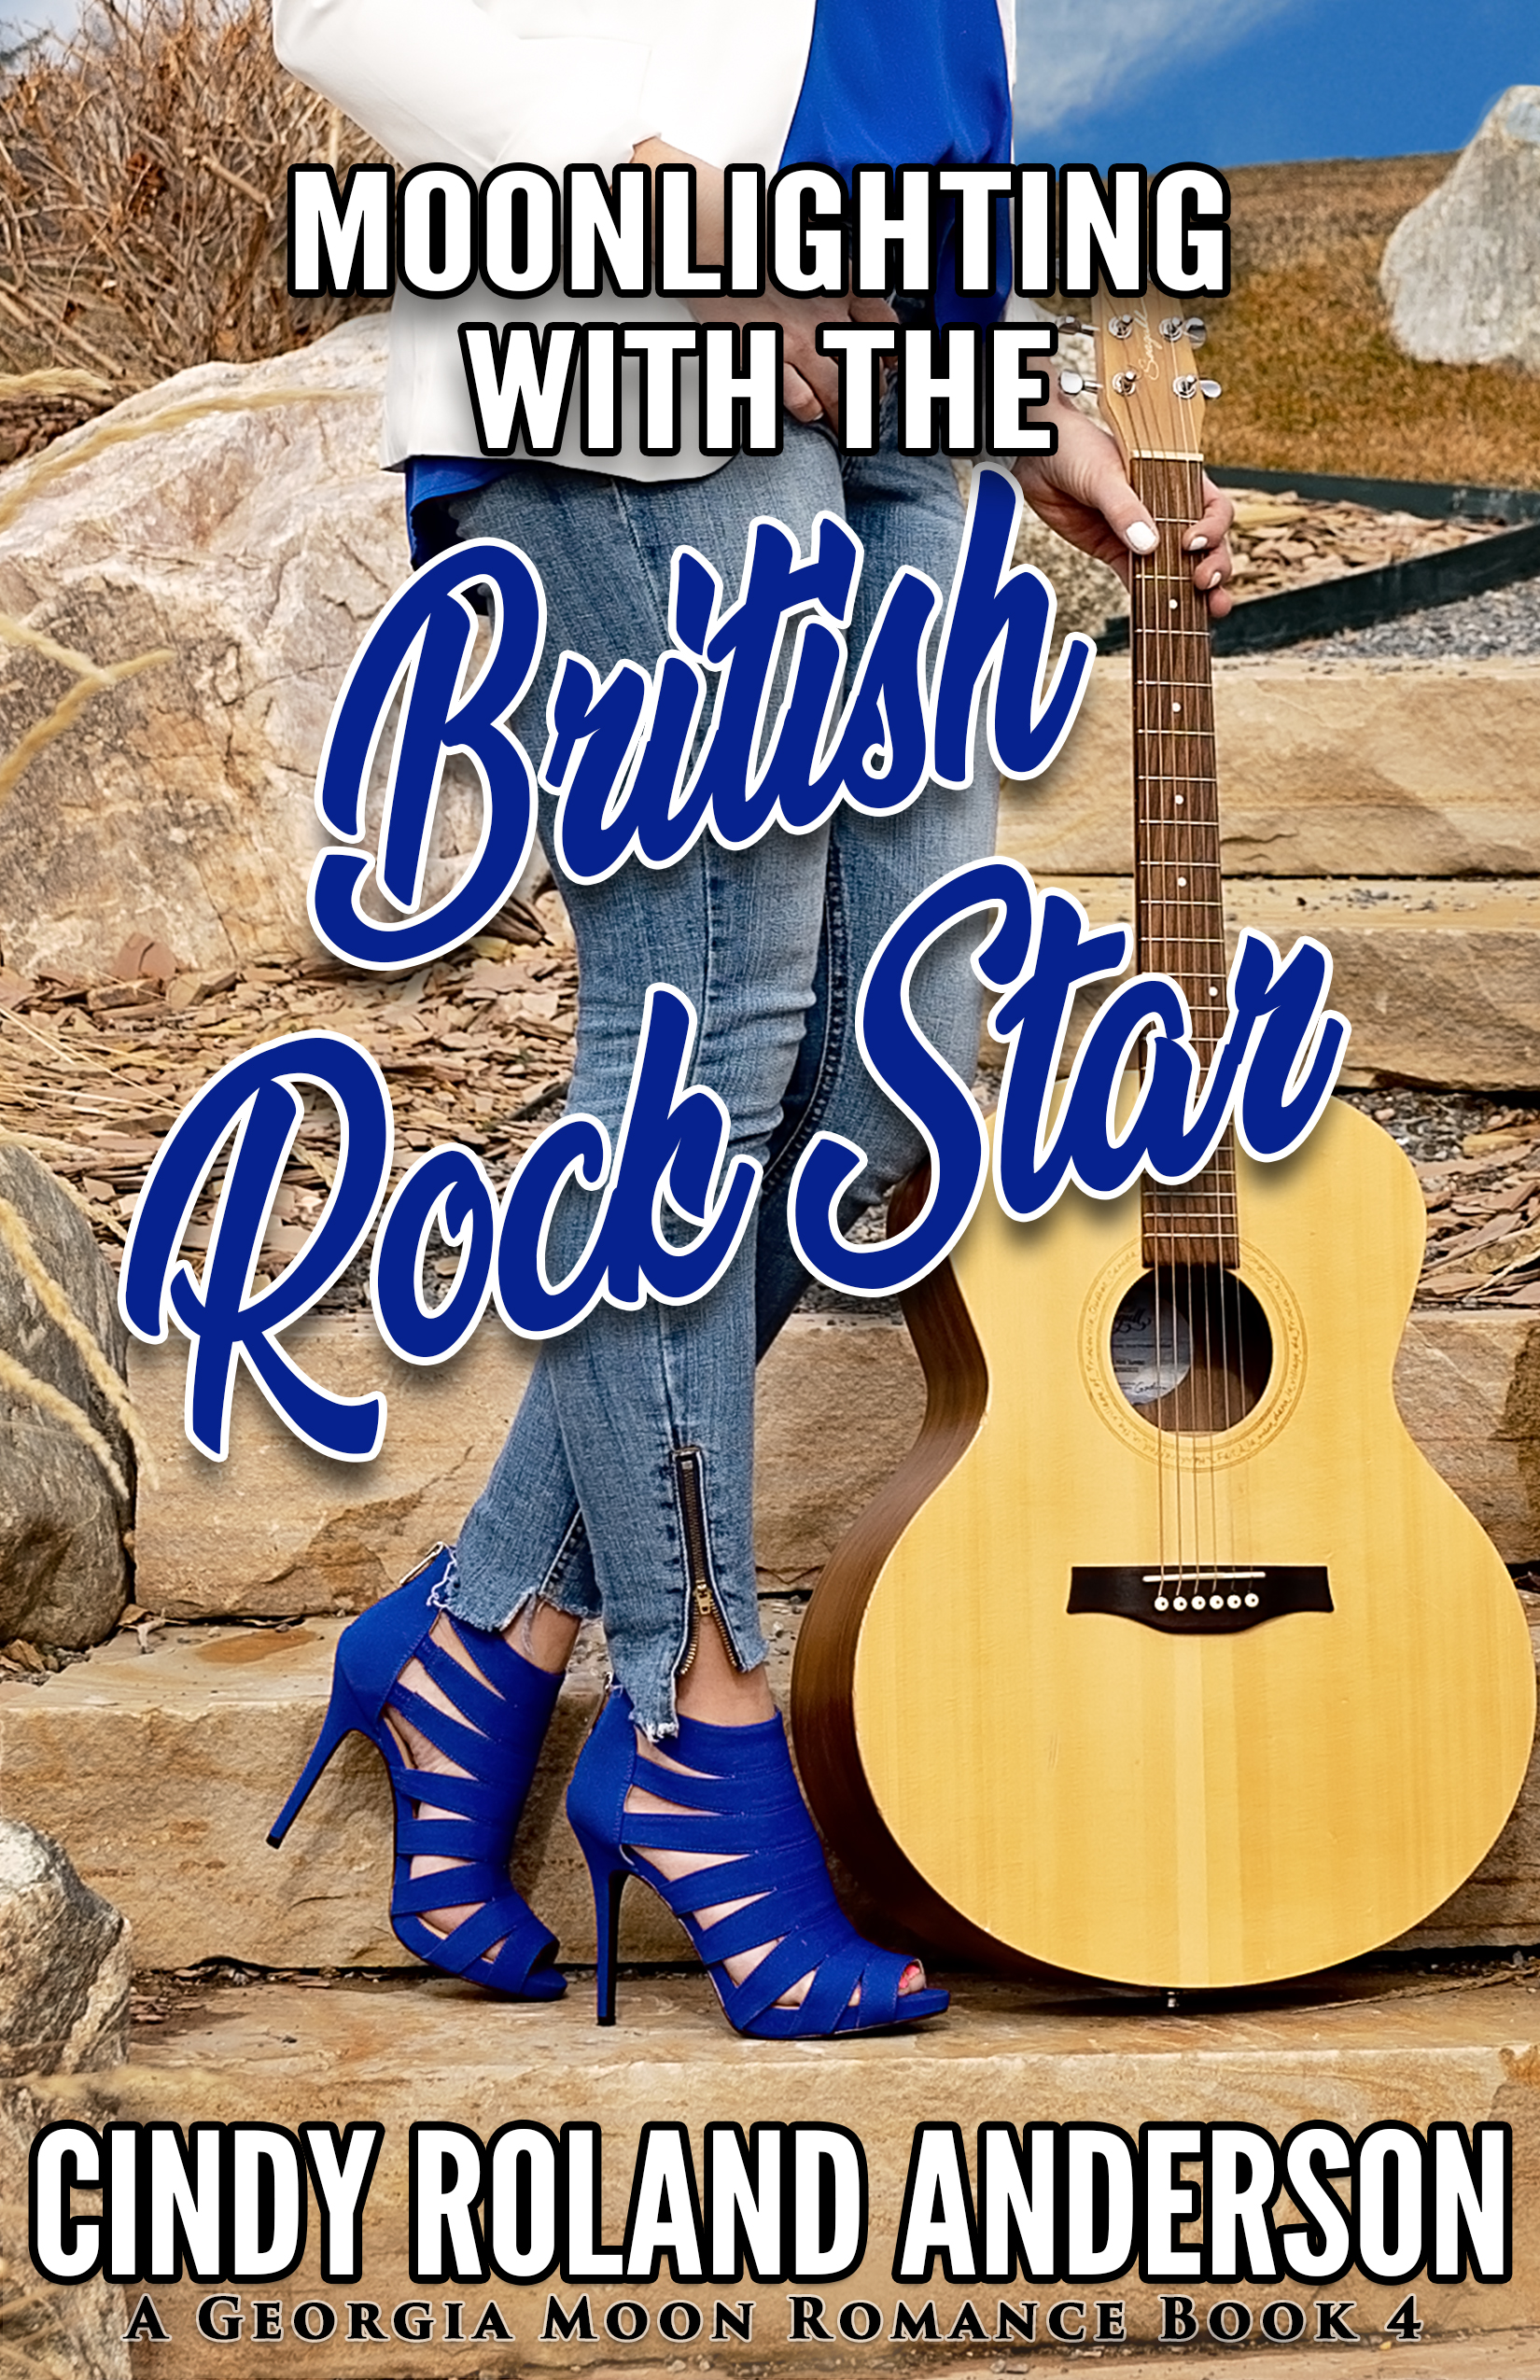 [PDF] [EPUB] Moonlighting with the British Rock Star: A Georgia Moon Romance Download by Cindy Roland Anderson